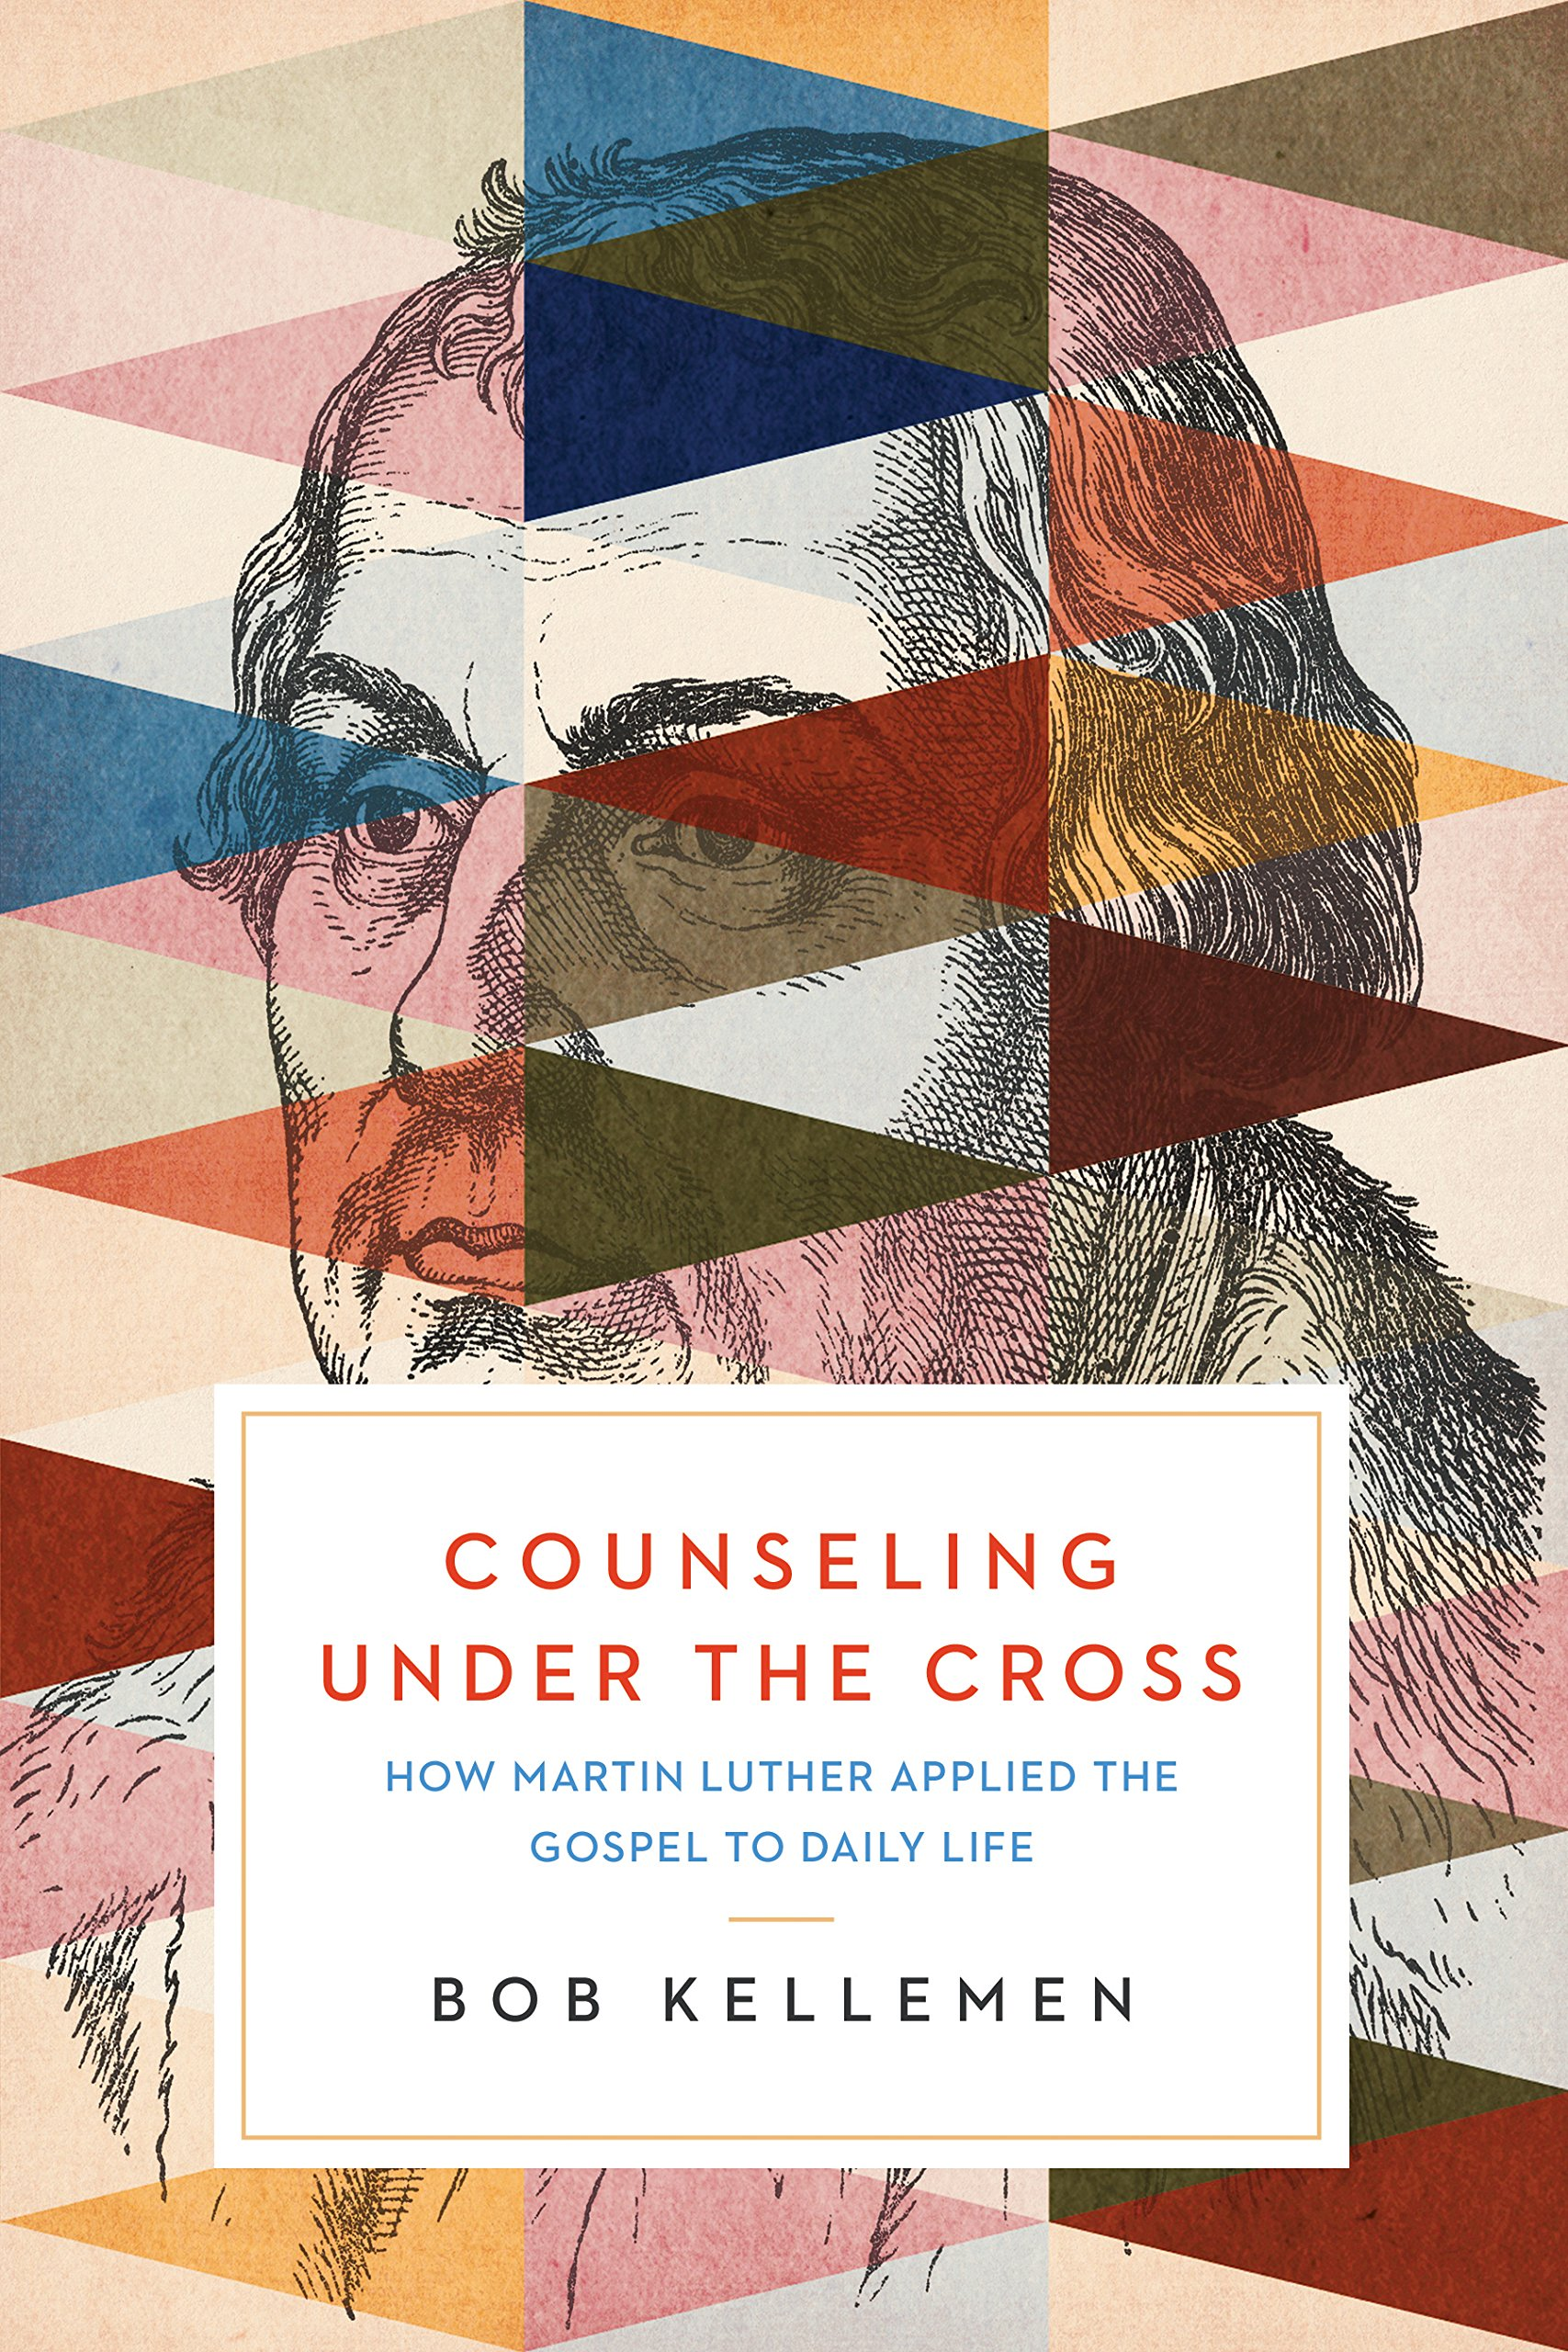 Counseling Under the Cross: How Martin Luther Applied the Gospel to Daily  Life: Bob Kellemen: 9781945270215: Amazon.com: Books